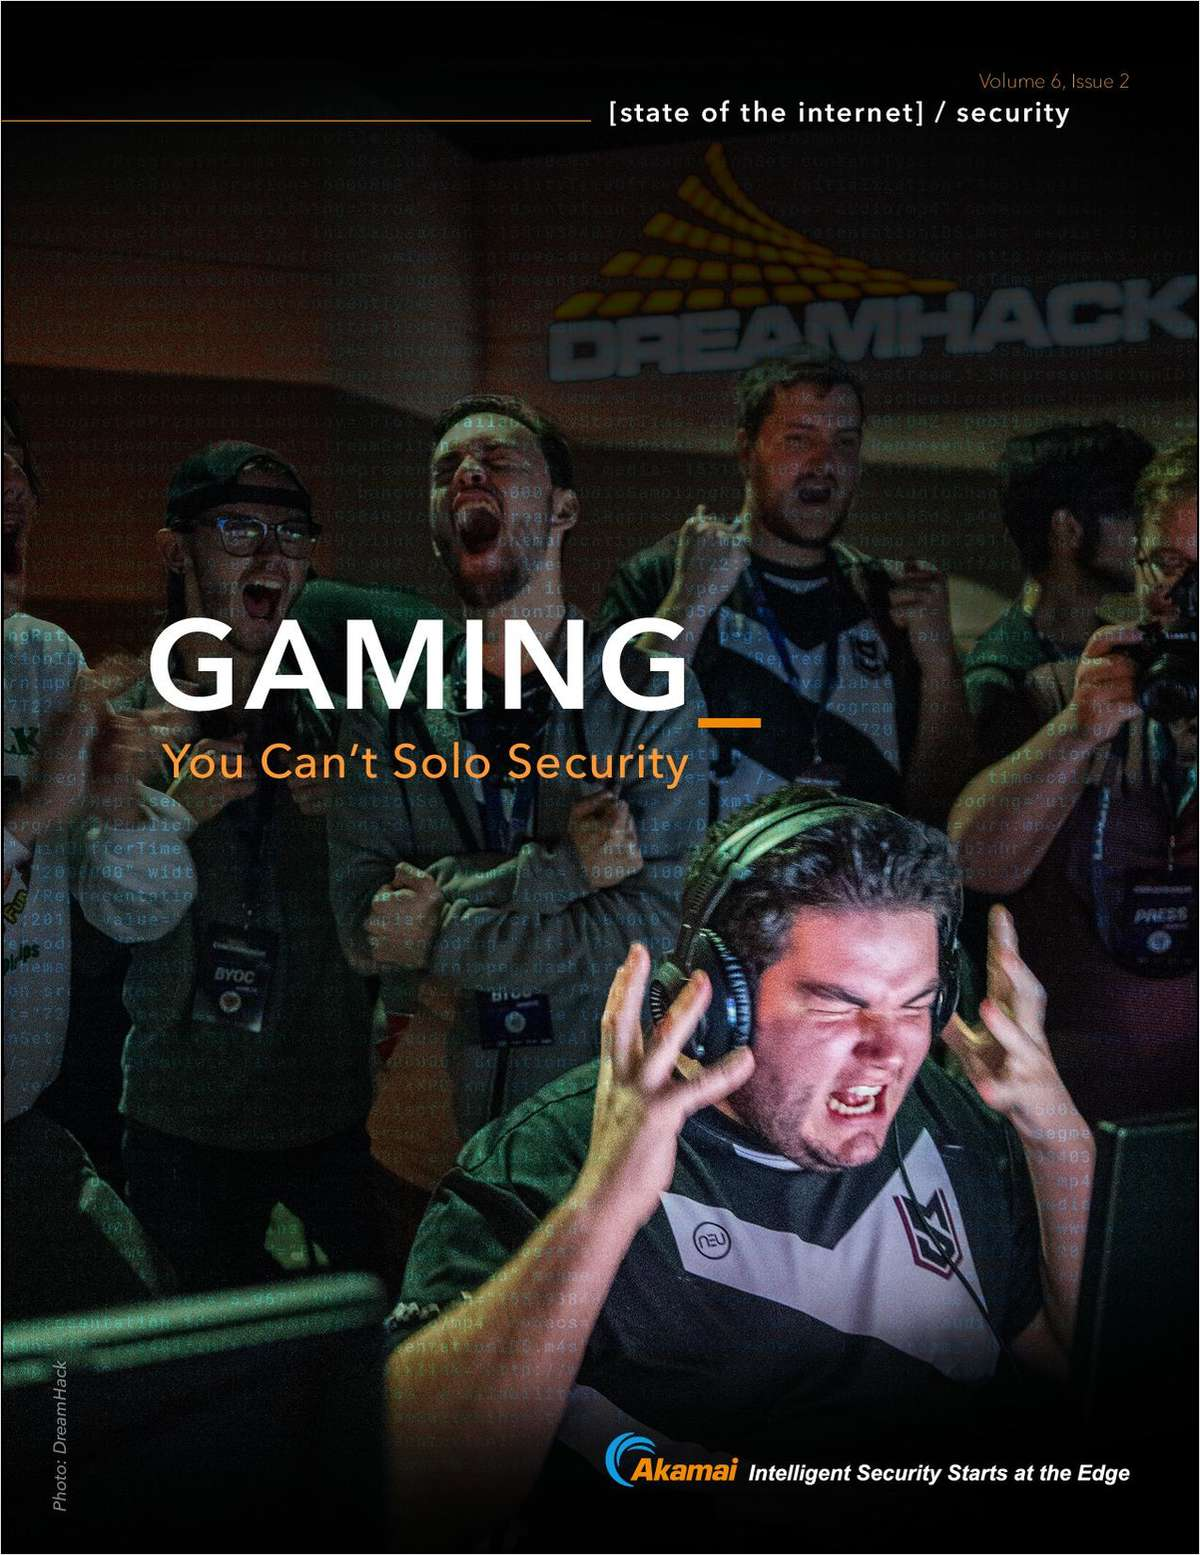 Gaming -- You Can't Solo Security